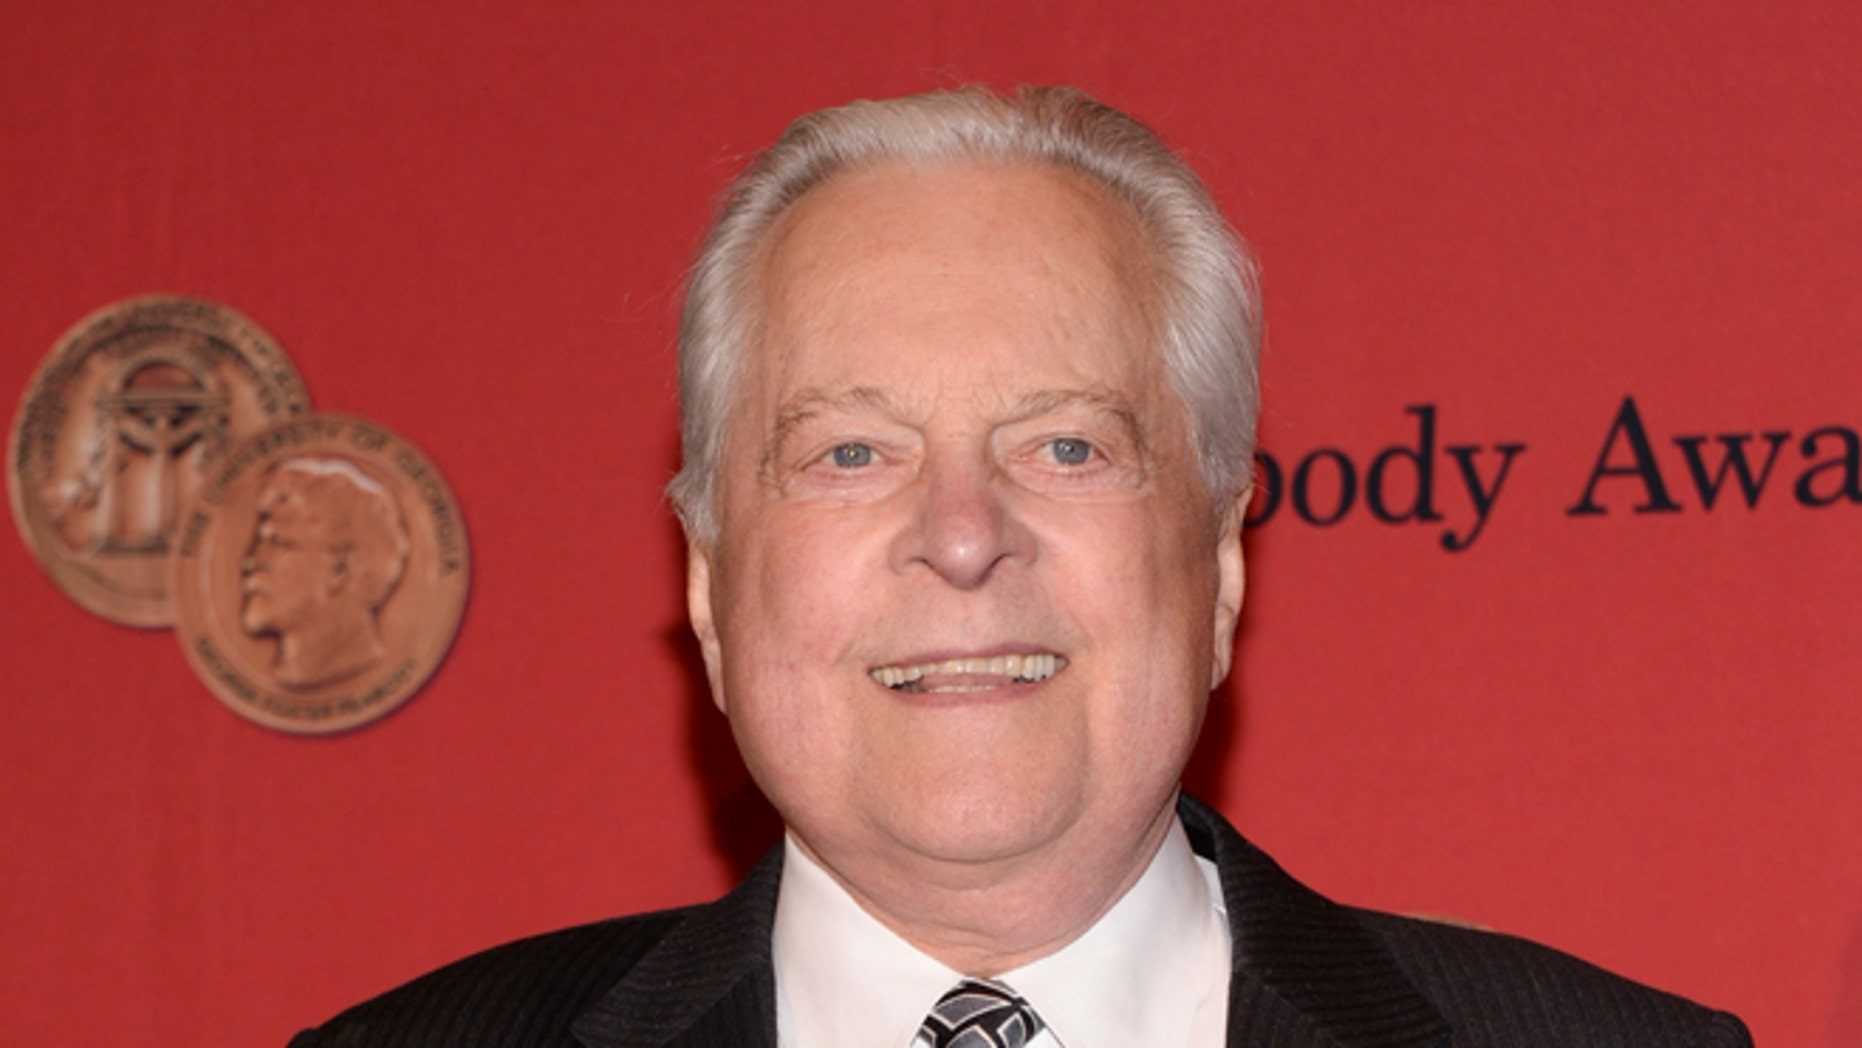 TCM will honor Robert Osborne, the channel's first host at their annual Film Festival.